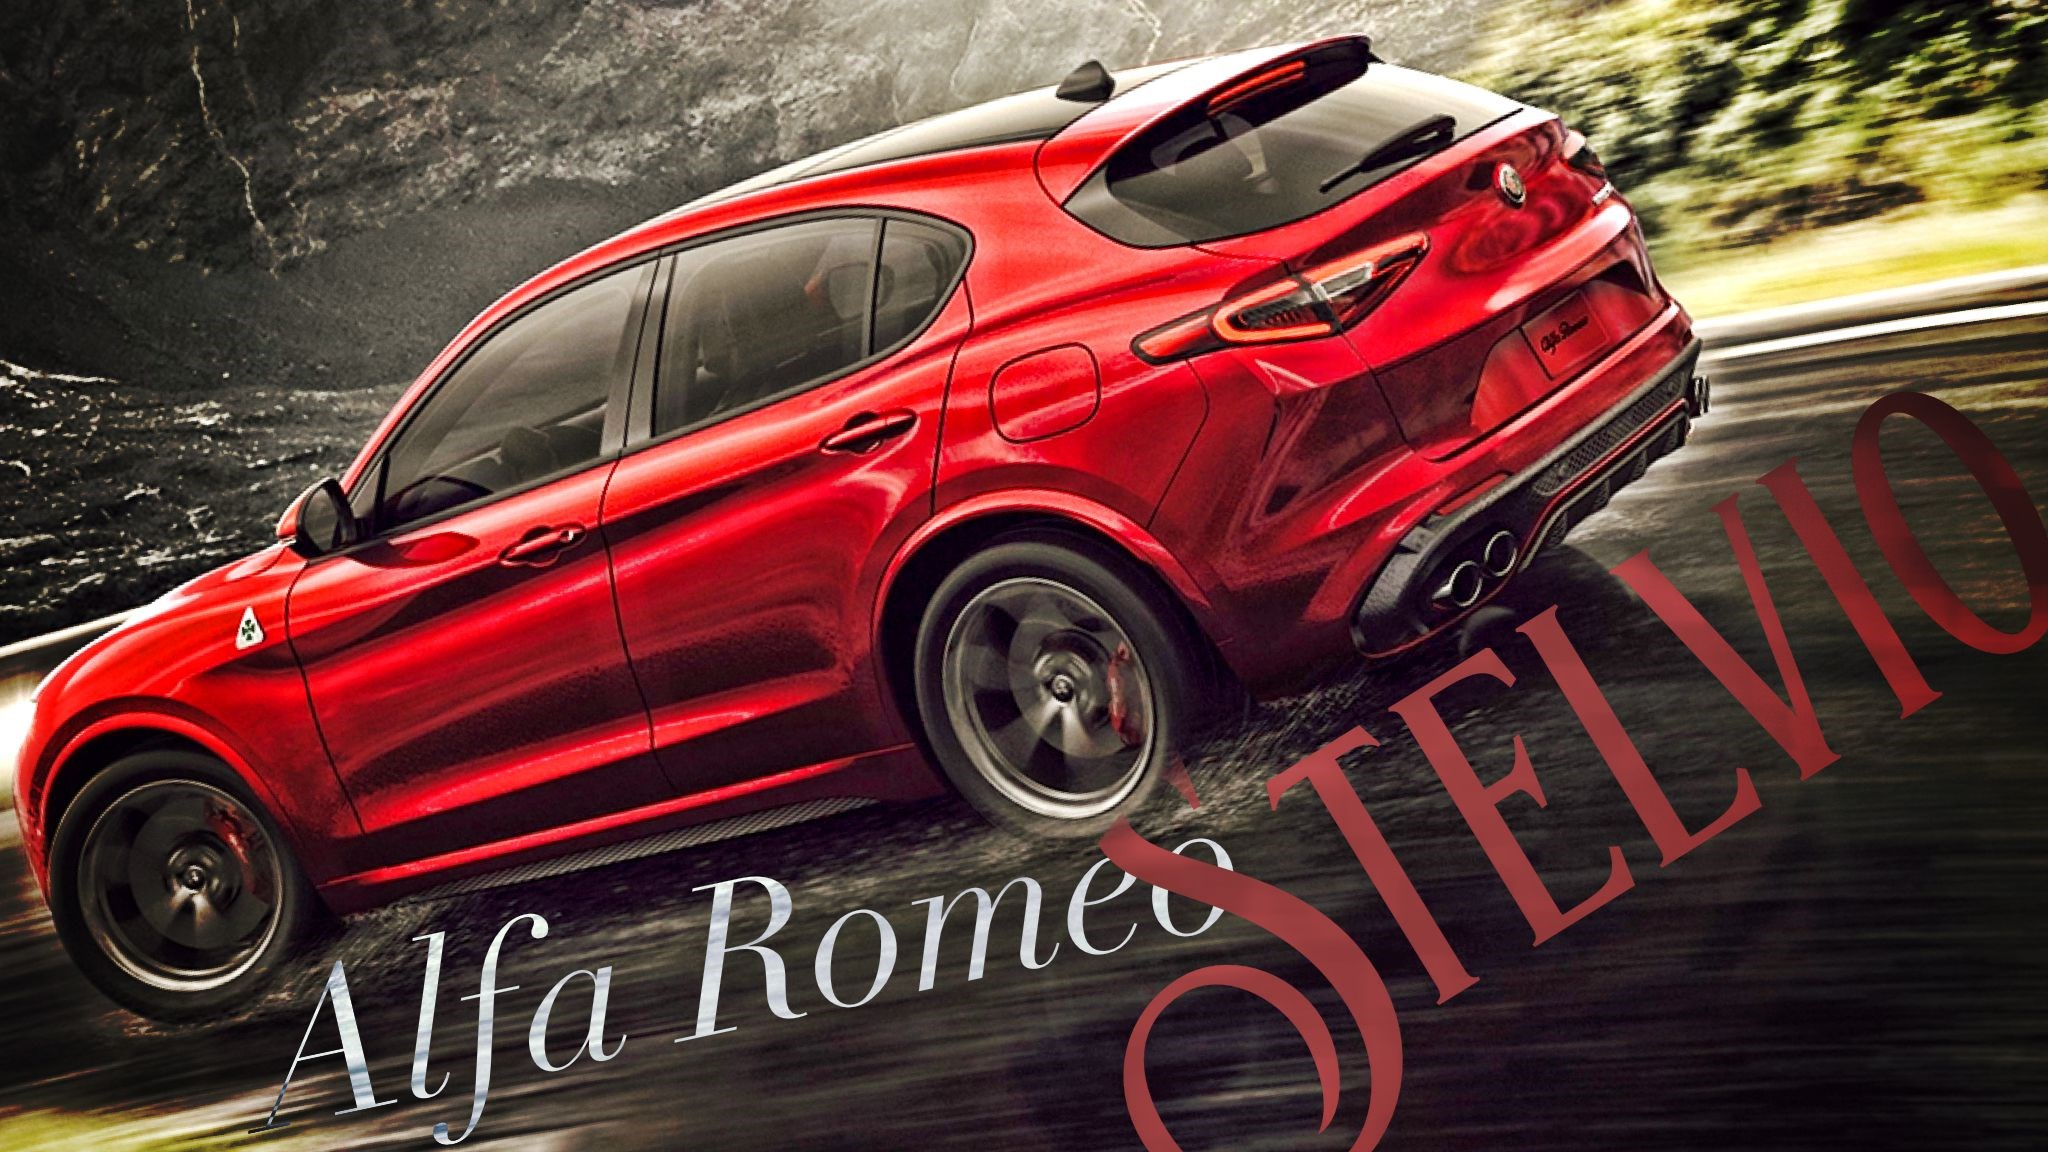 Alfa Romeo Unveils Stelvio In LA, Their SUV Saviour